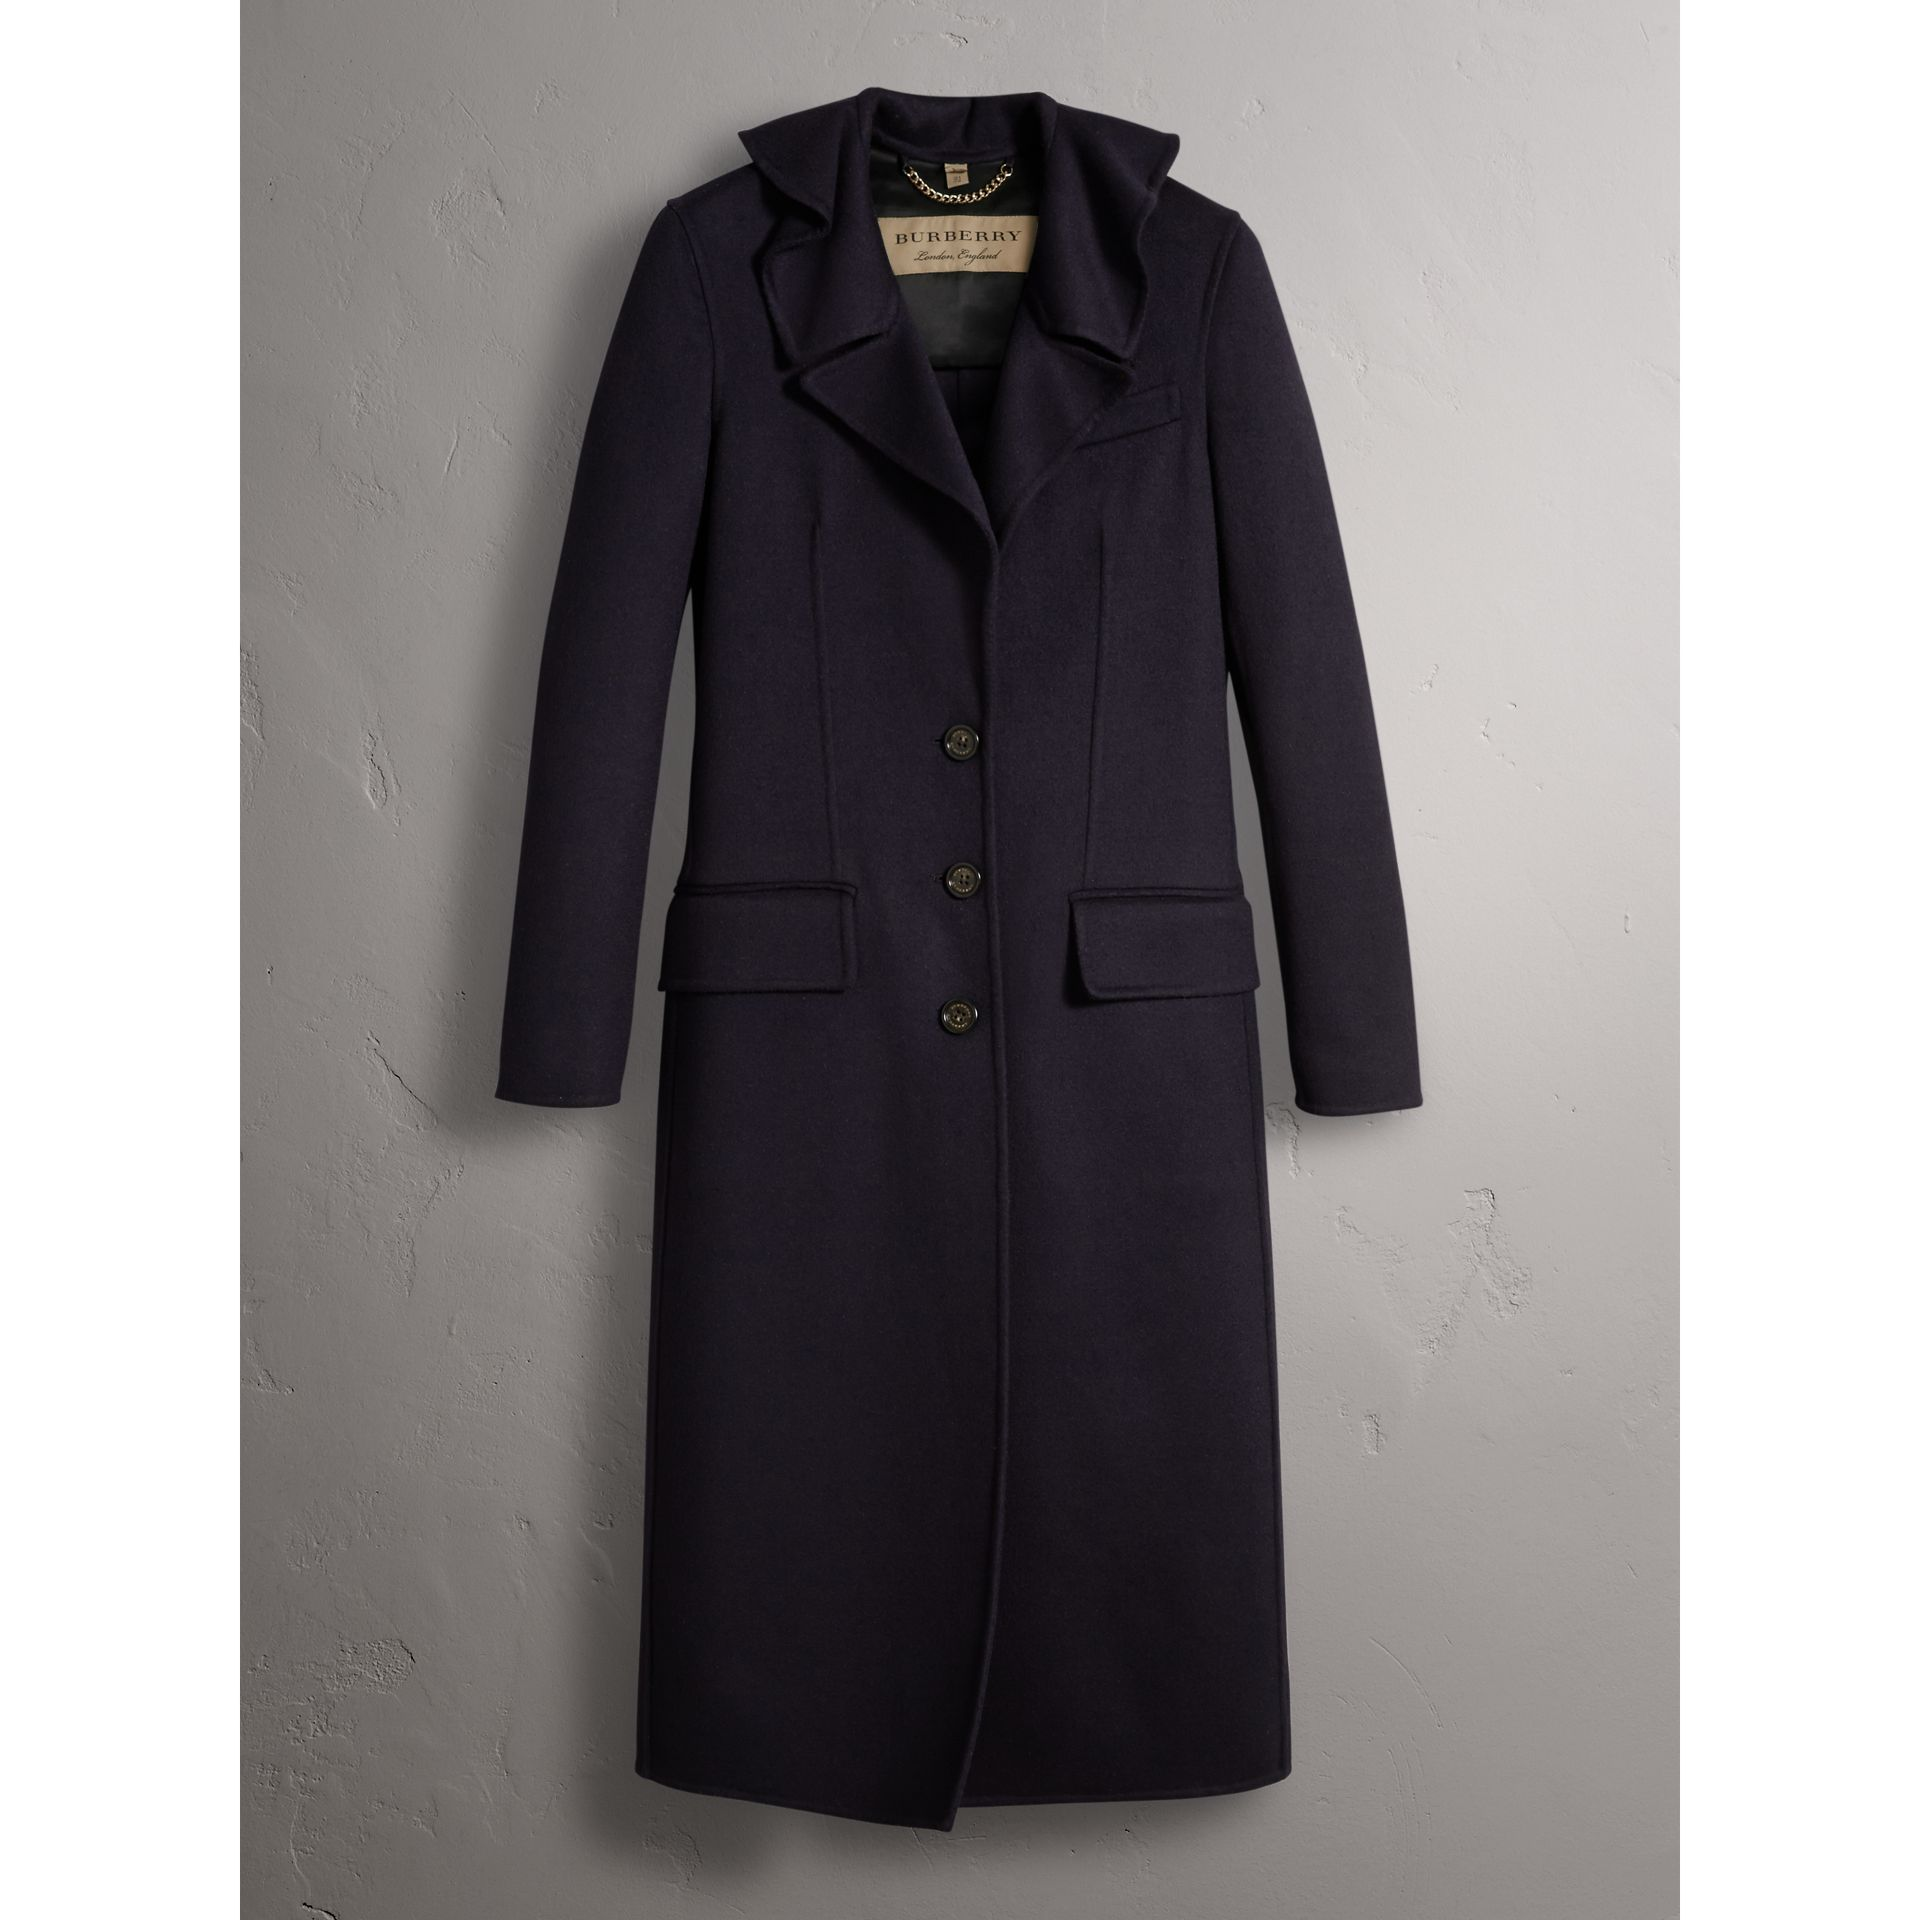 Ruffled Collar Wool Cashmere Coat in Navy - Women | Burberry - gallery image 4